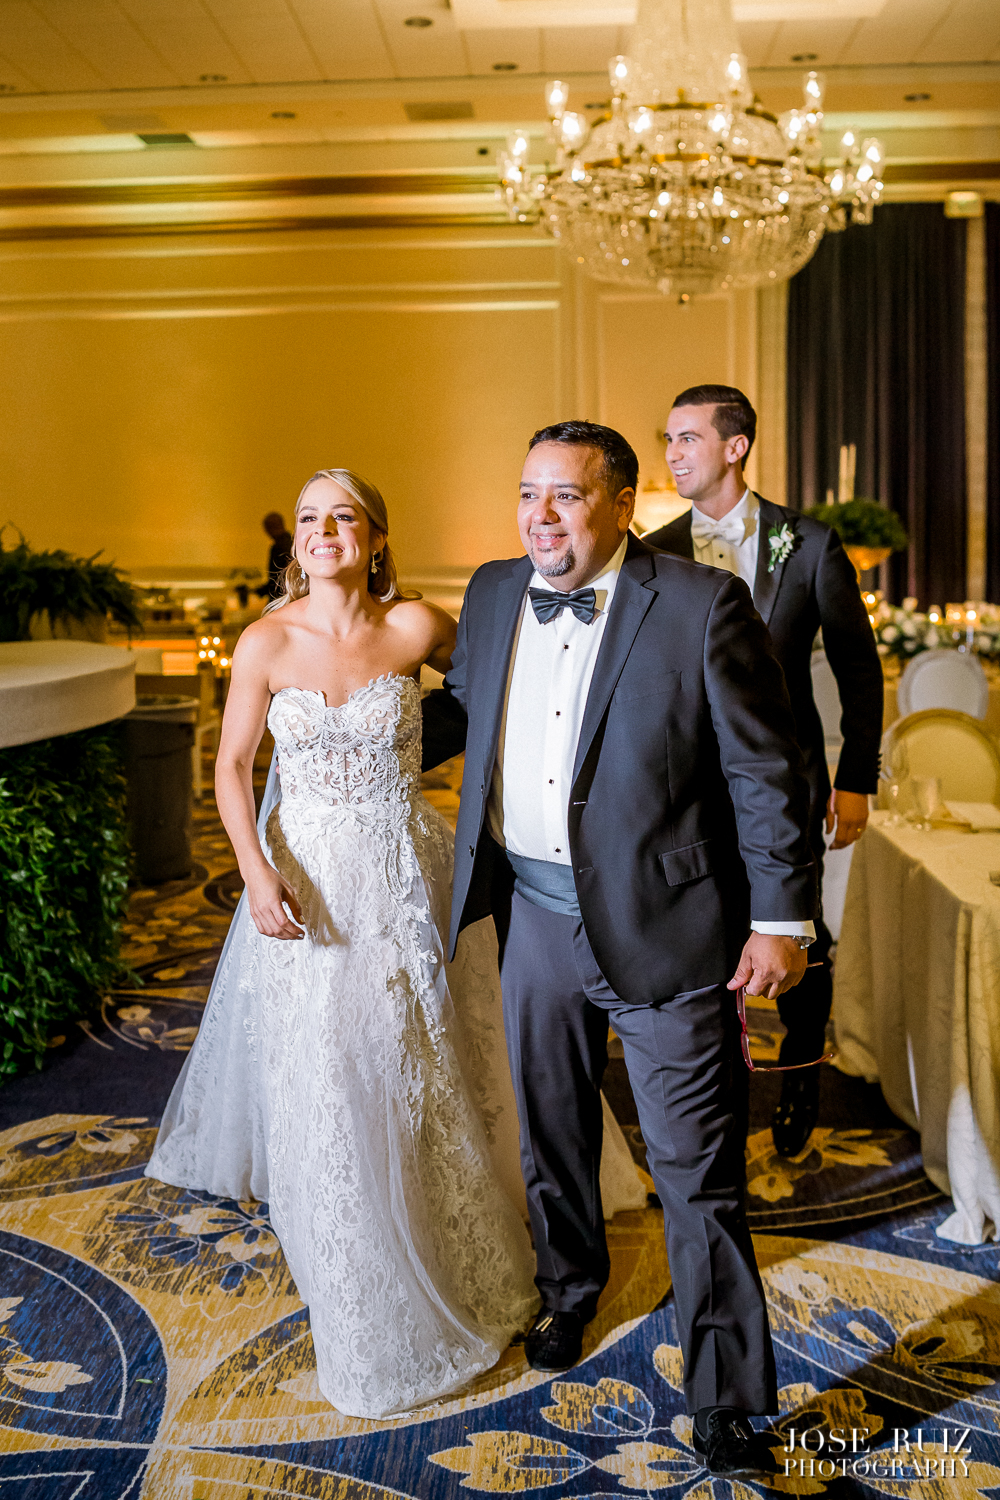 Jose Ruiz Photography- Carolina & Gabo Wedding Day-0126.jpg